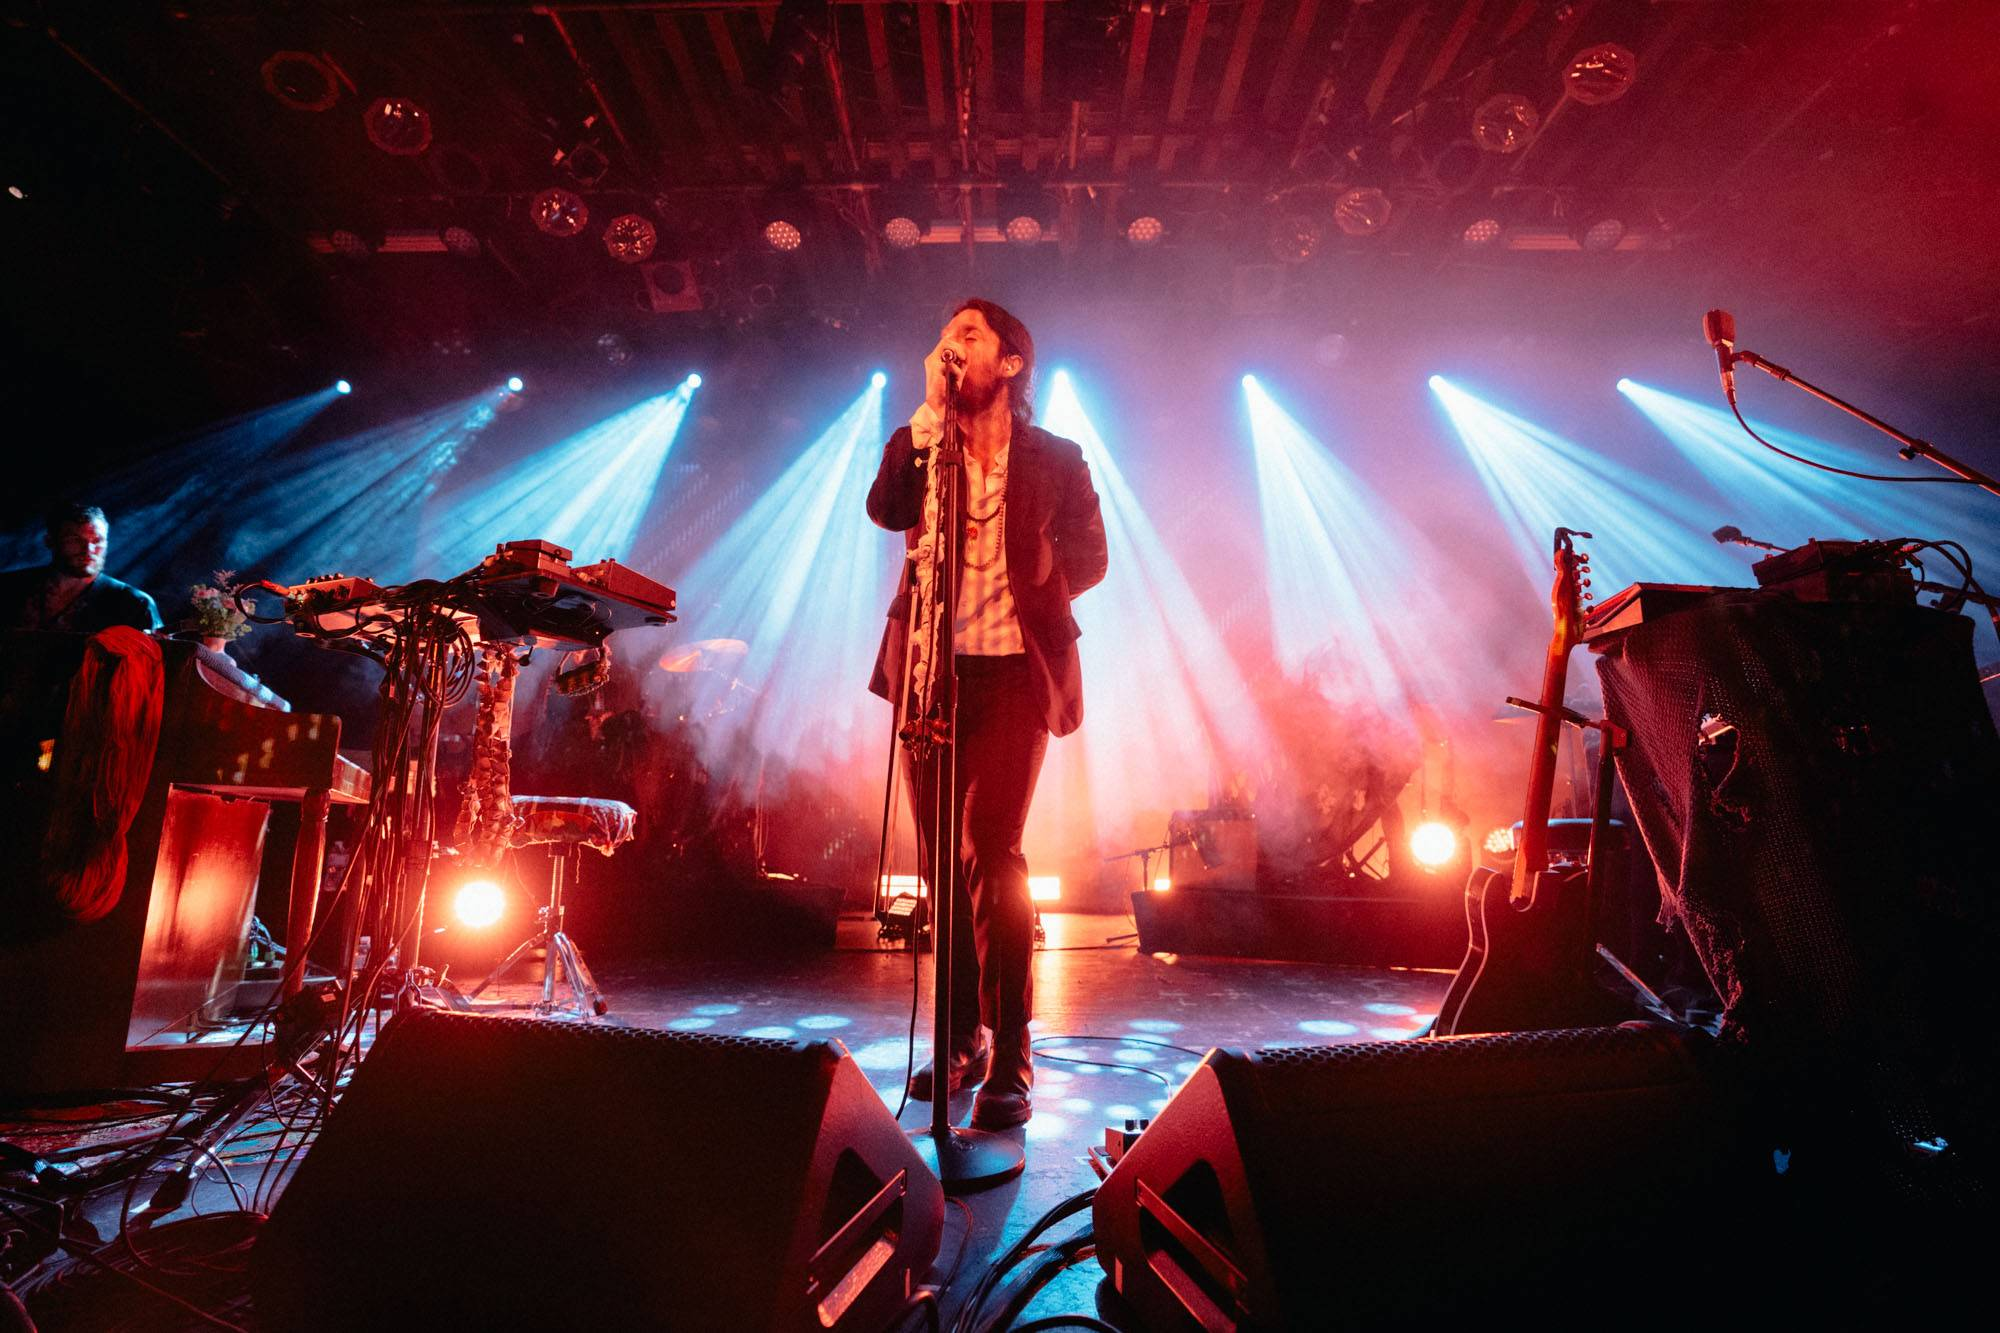 Nick Murphy at the Commodore Ballroom, Vancouver, Jun 9 2019. Audrey Alexandrescu photos.